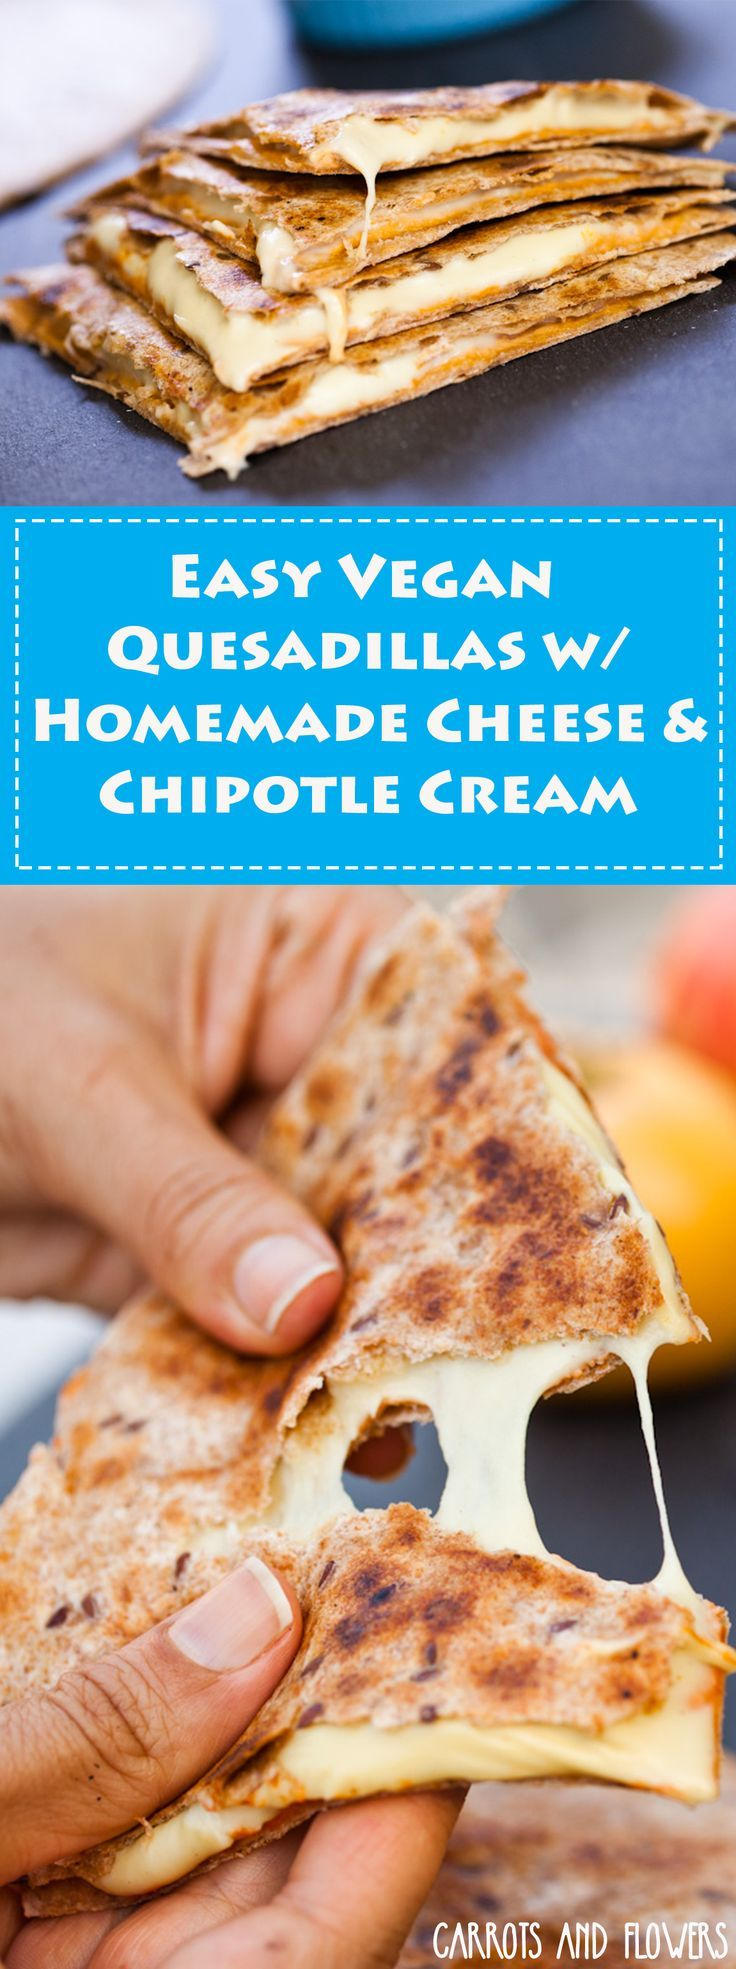 20 Minute Vegan Quesadillas With Cashew Cheese And Chipotle Cream